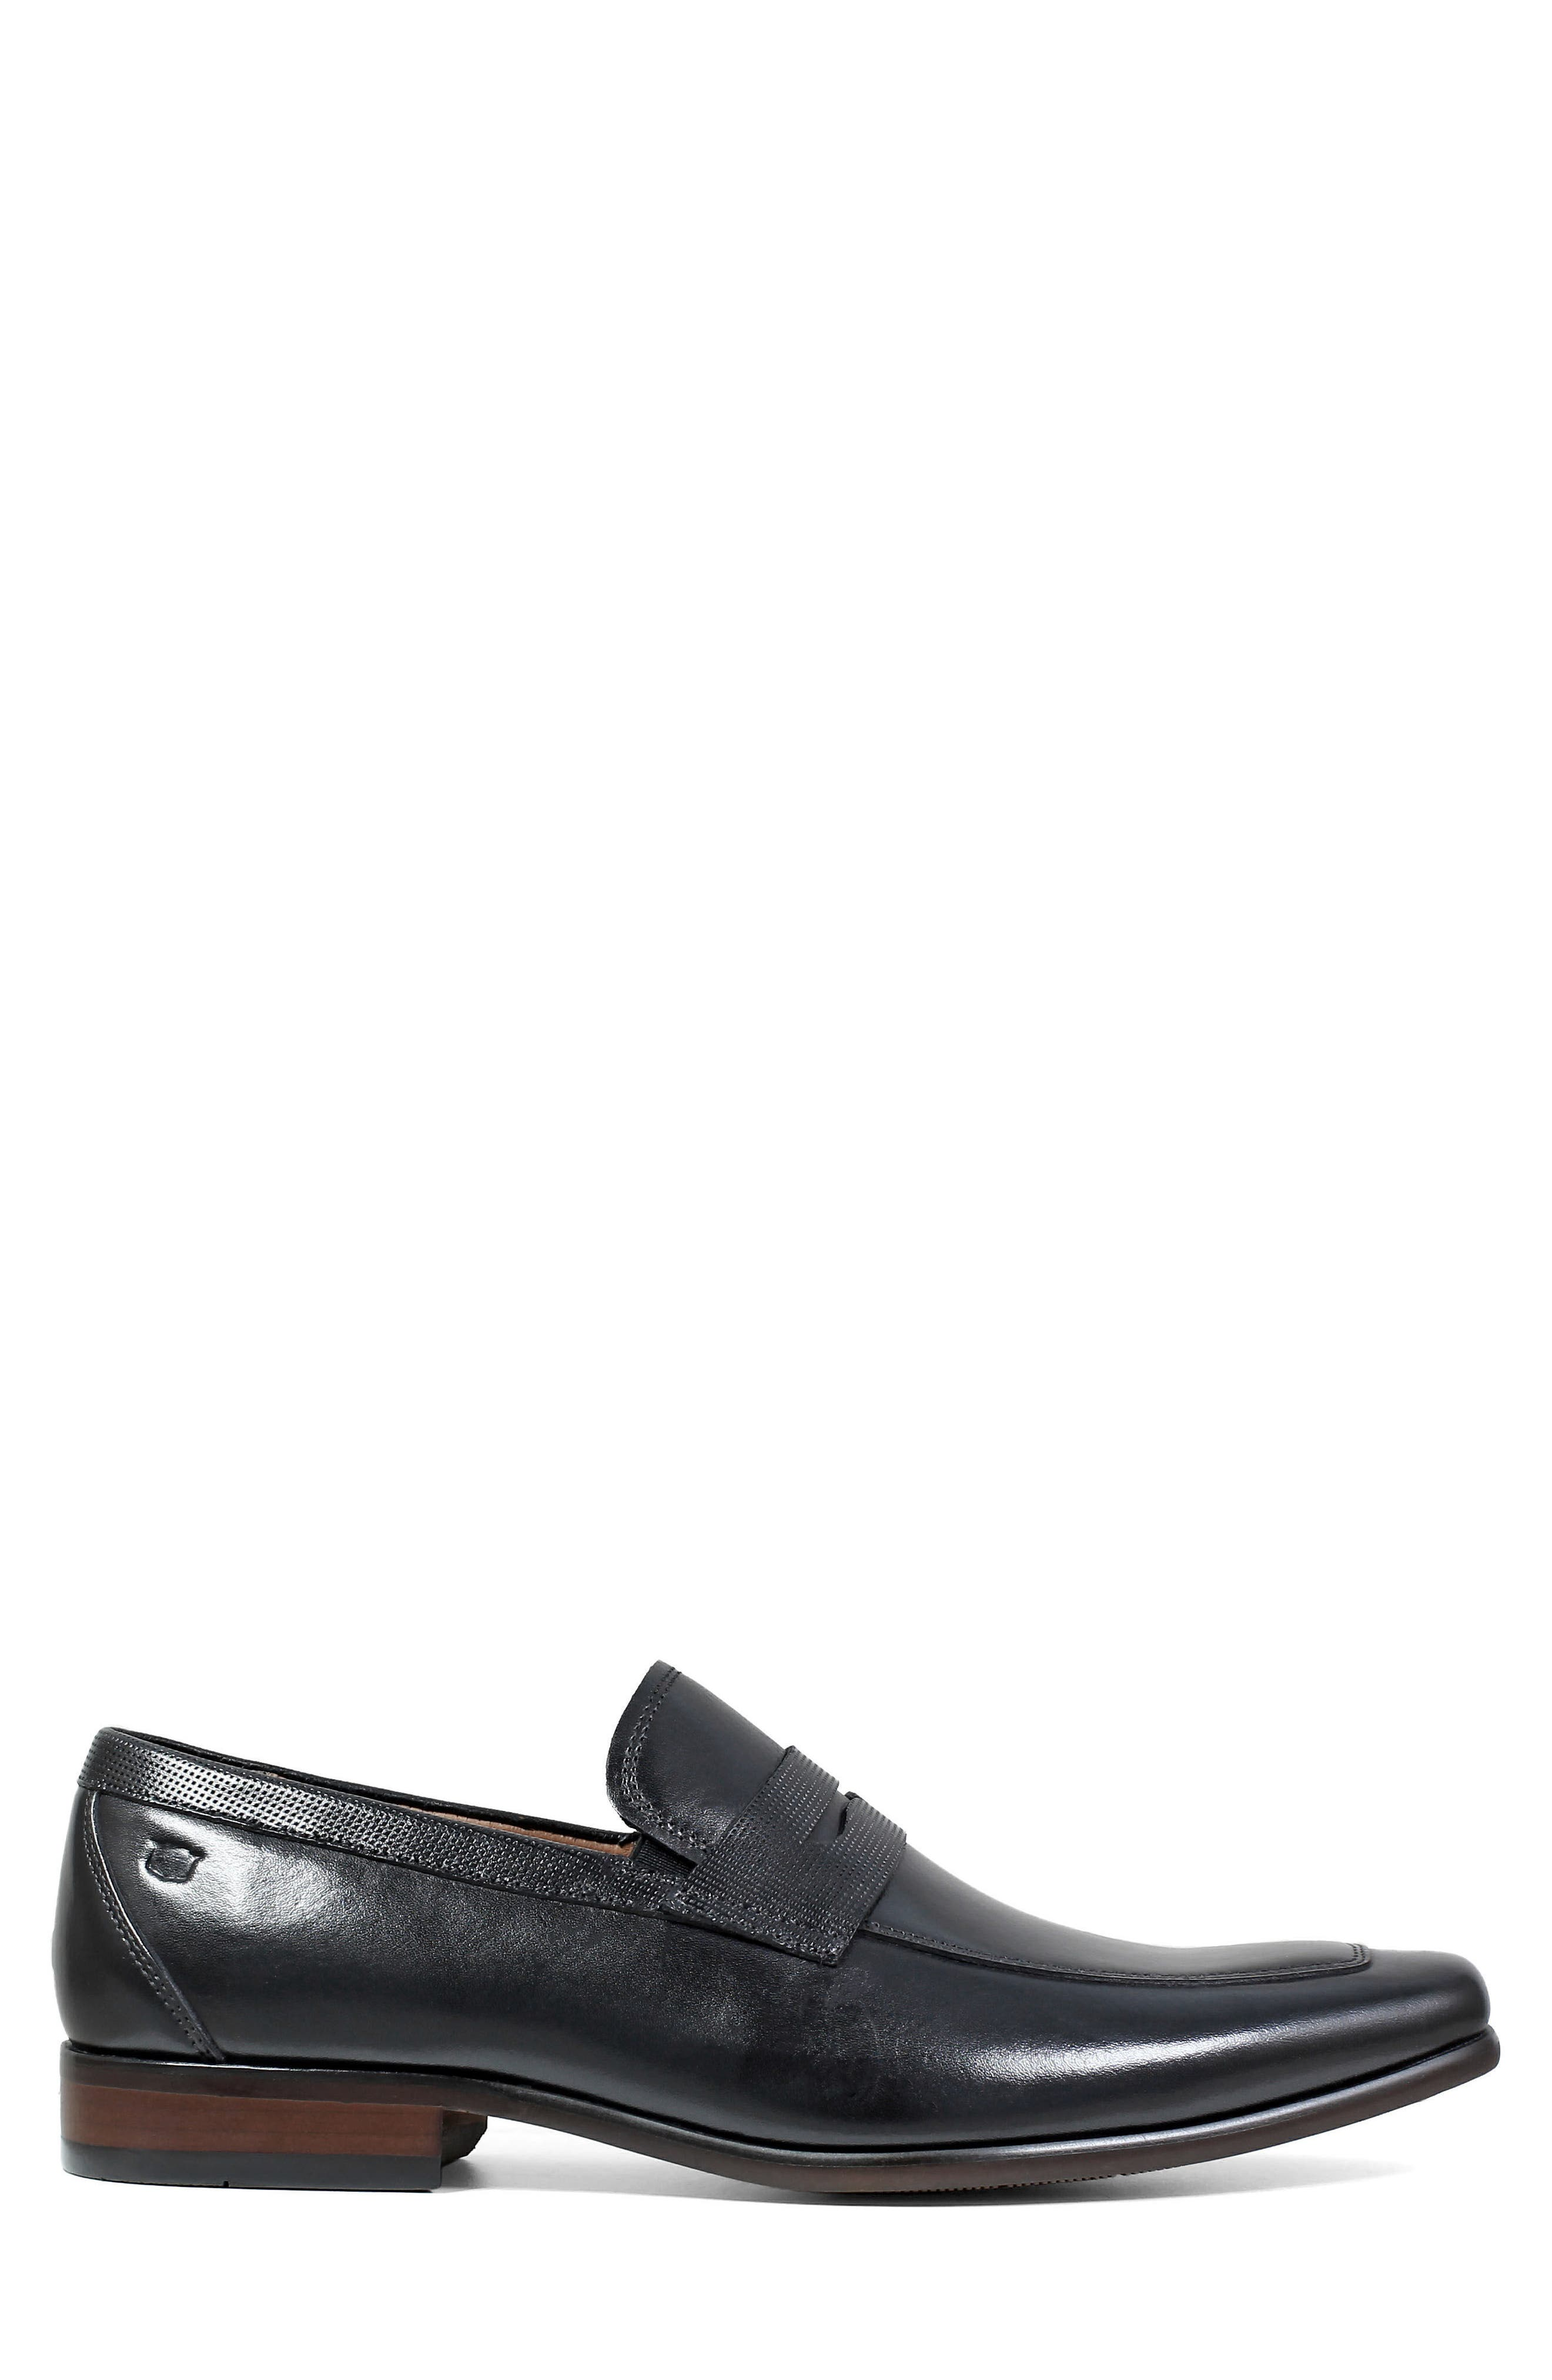 Postino Apron Toe Textured Penny Loafer,                             Alternate thumbnail 3, color,                             Black Leather